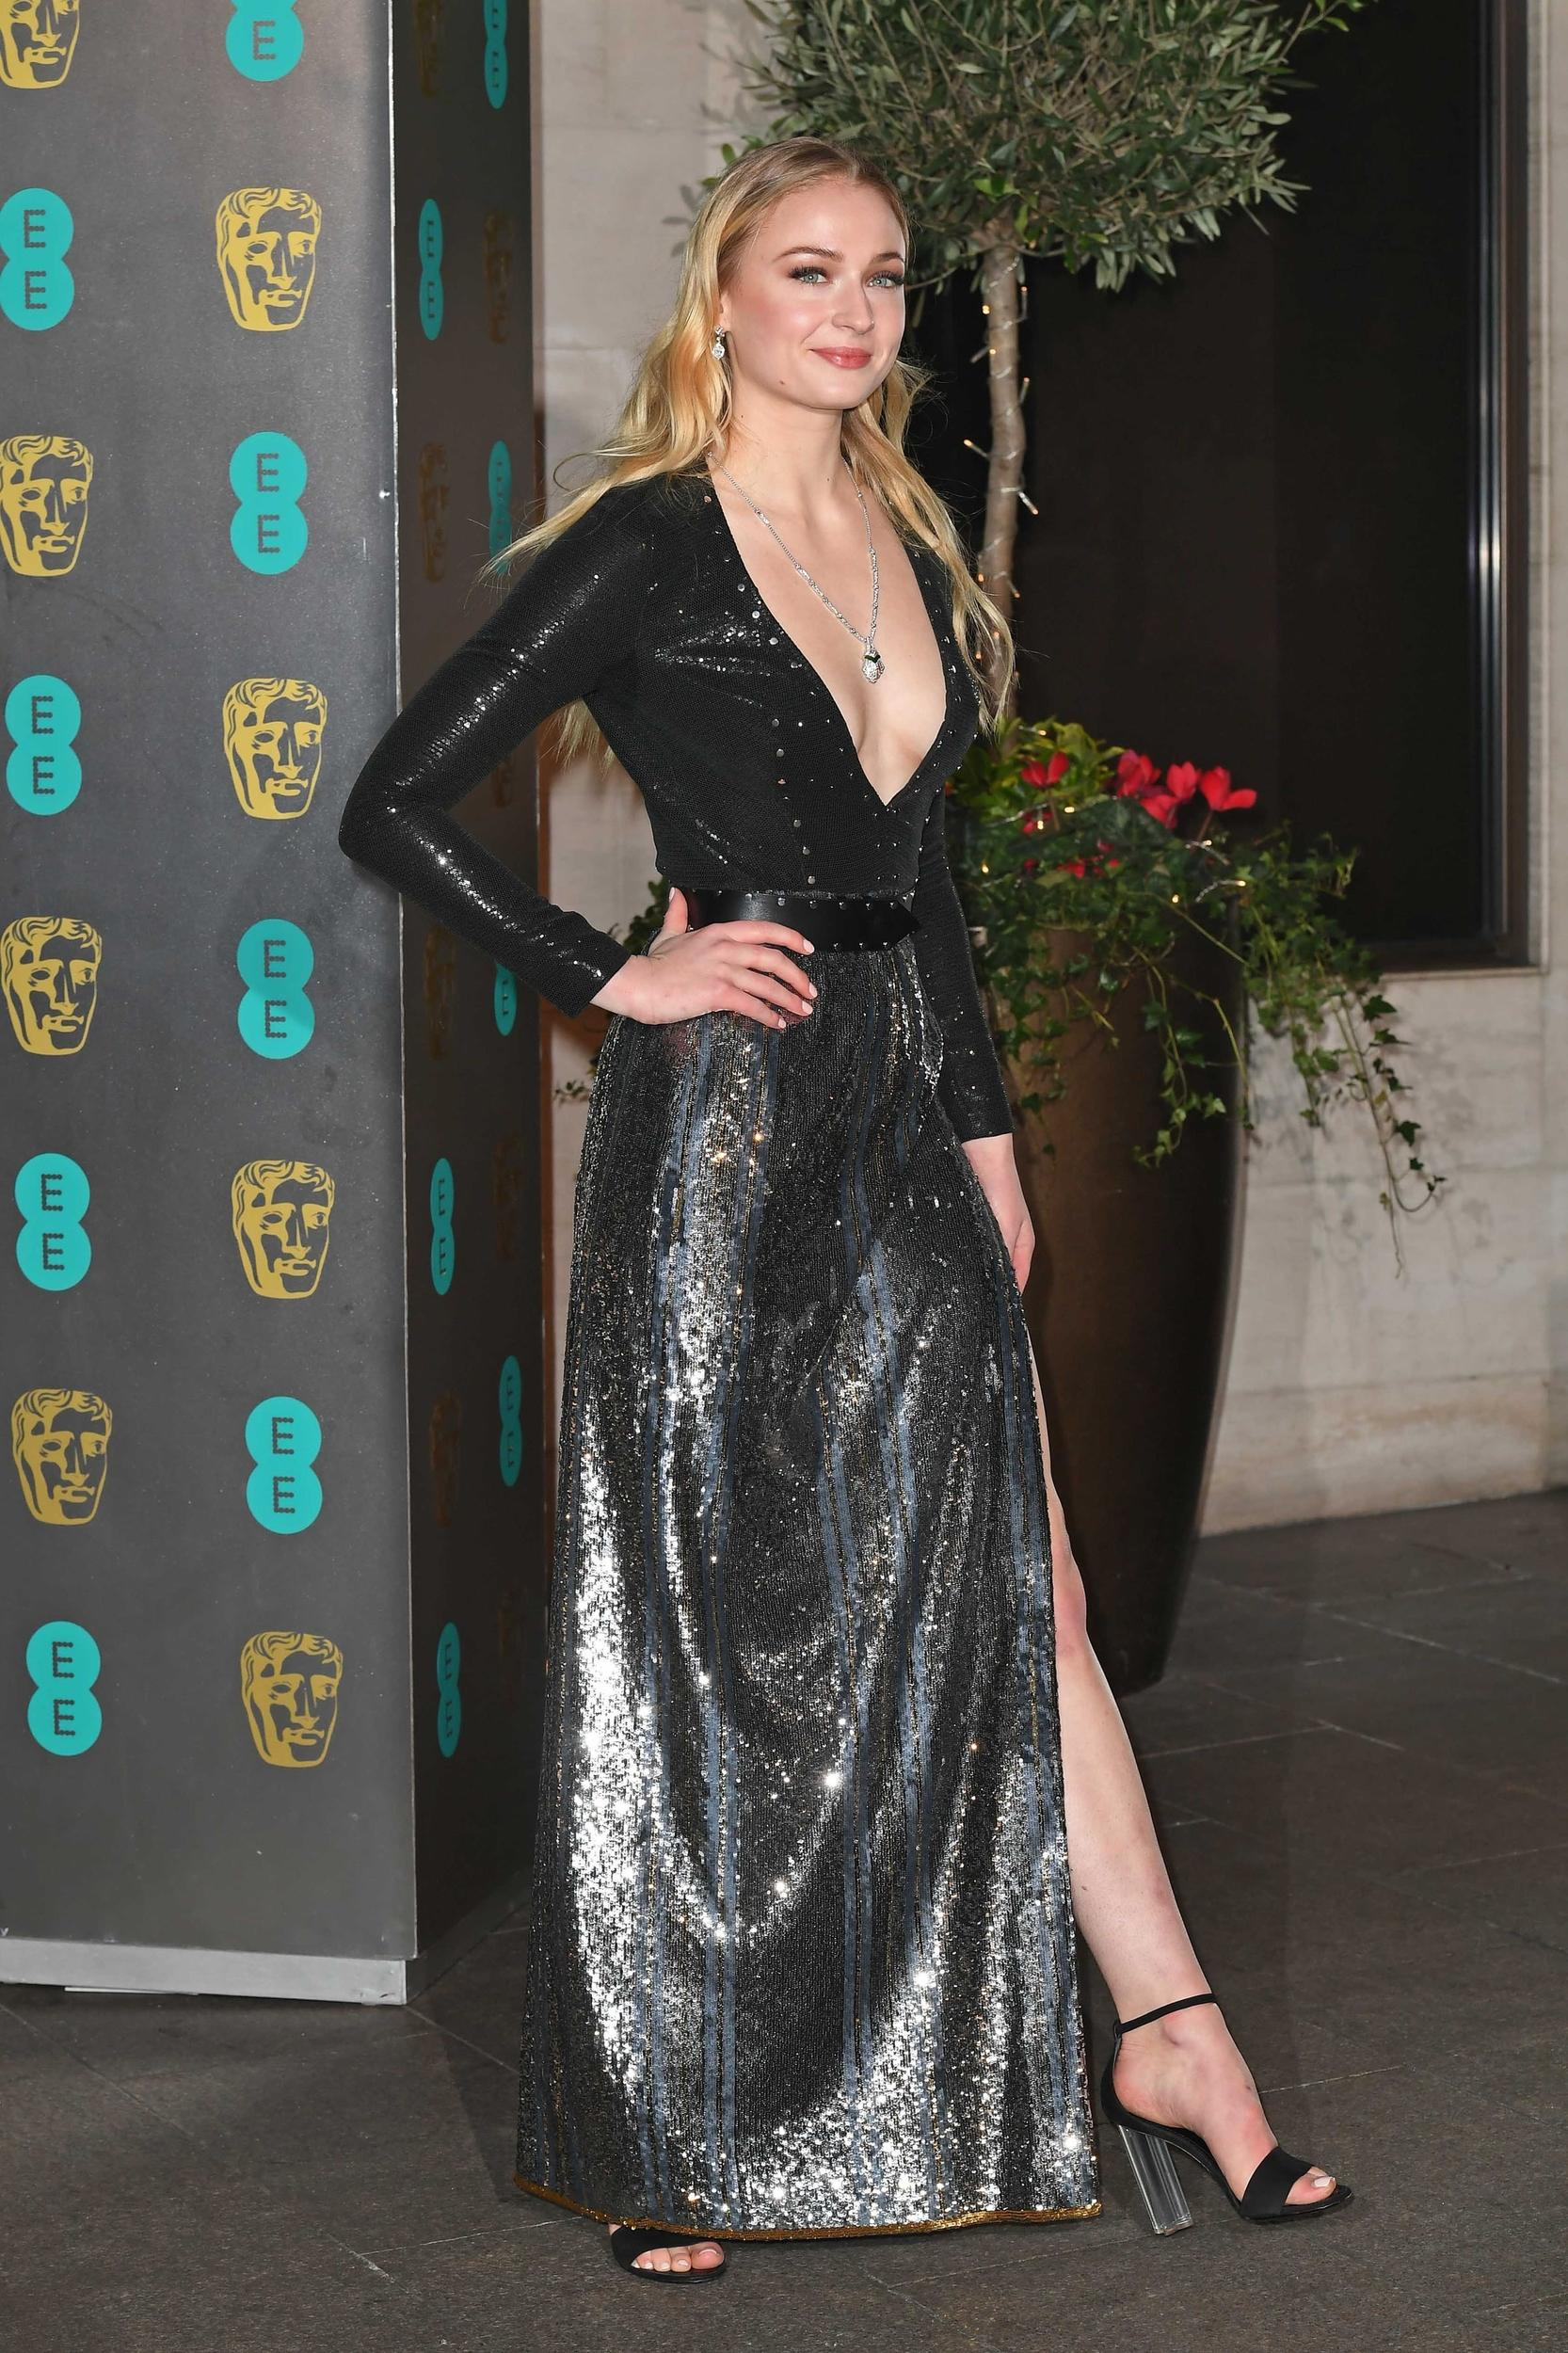 Photo by: KGC-143/STAR MAX/IPx 2017 2/12/17 Sophie Turner at the after party for the 2017 BAFTA British Academy Film Awards. (Grosvenor House Hotel, London, England, UK)